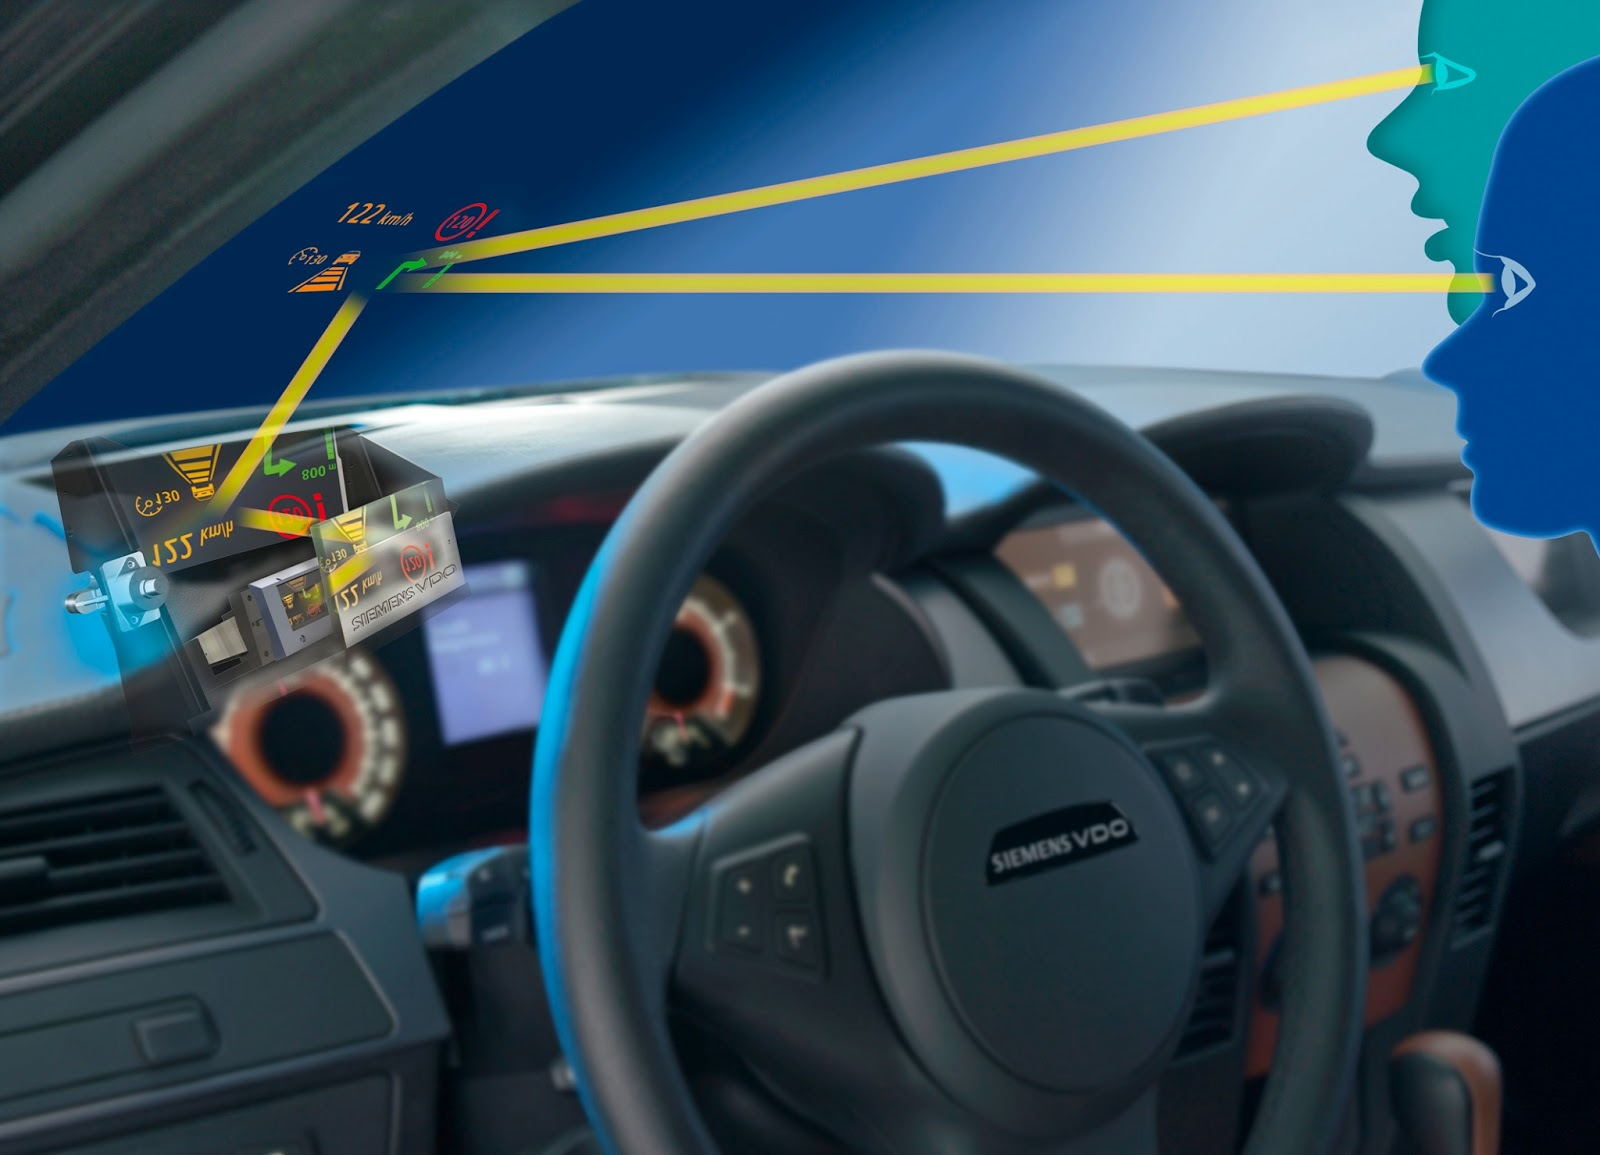 Hud Head Up Displays Windshield Projection Technologies